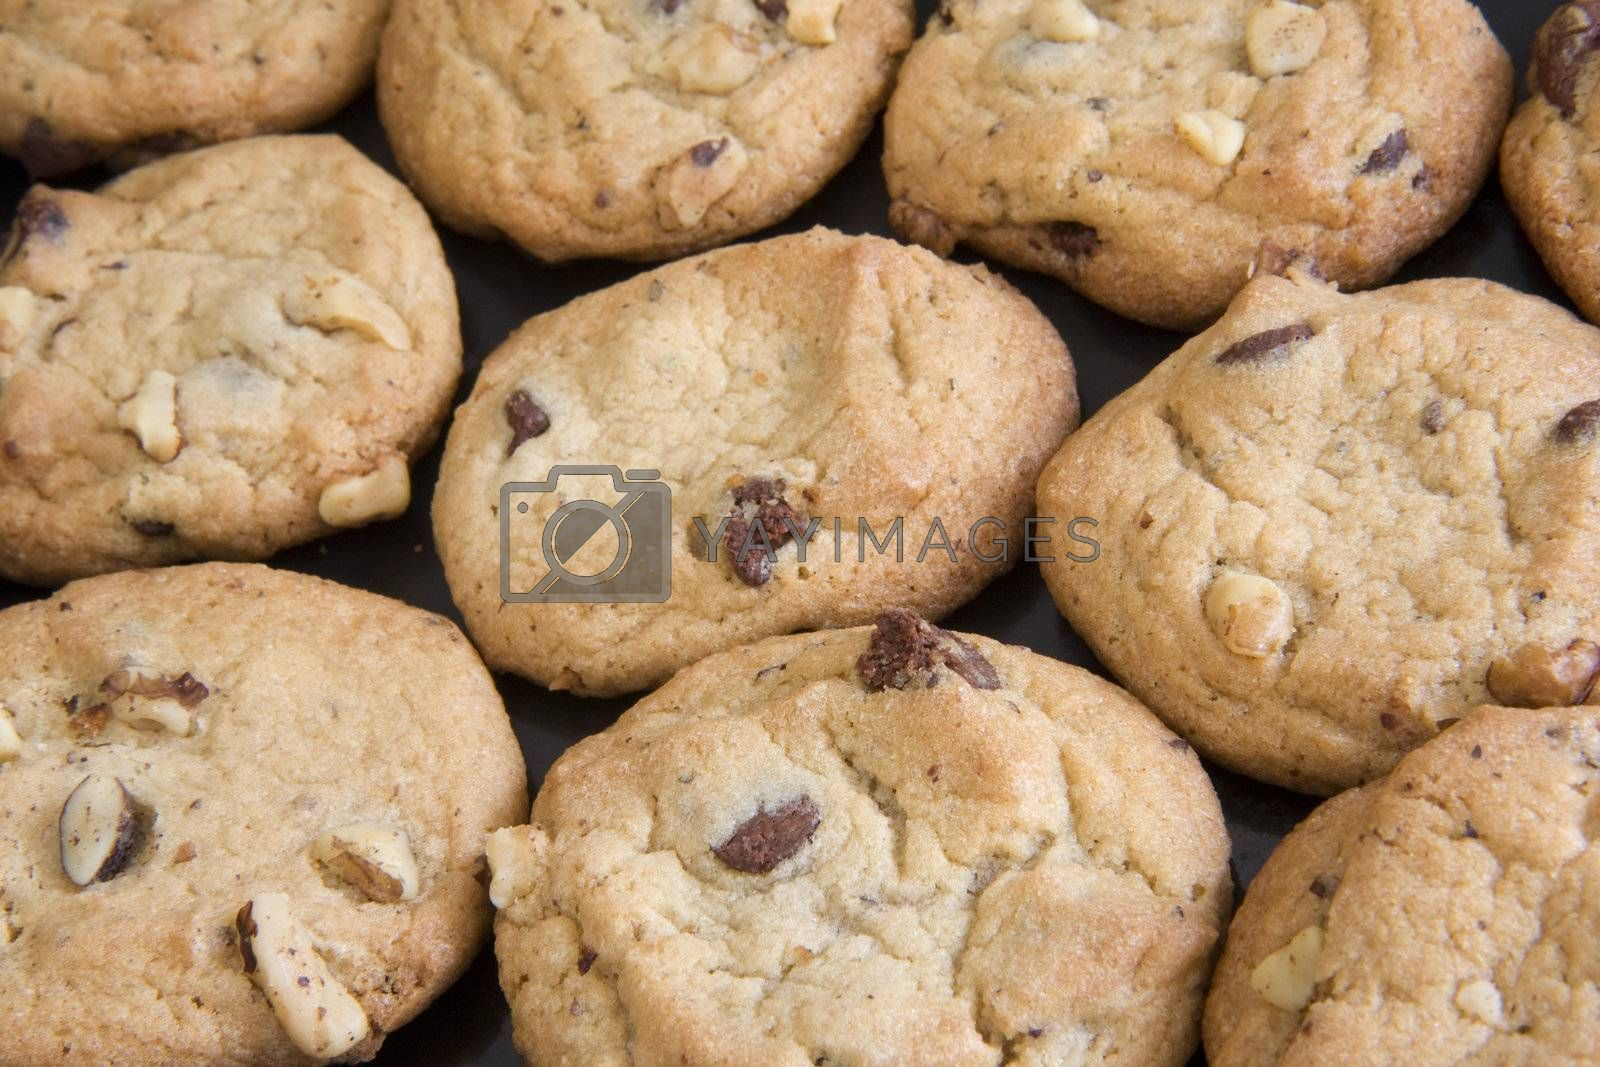 freshly backed cookies with chocolate chips and walnut slices - background